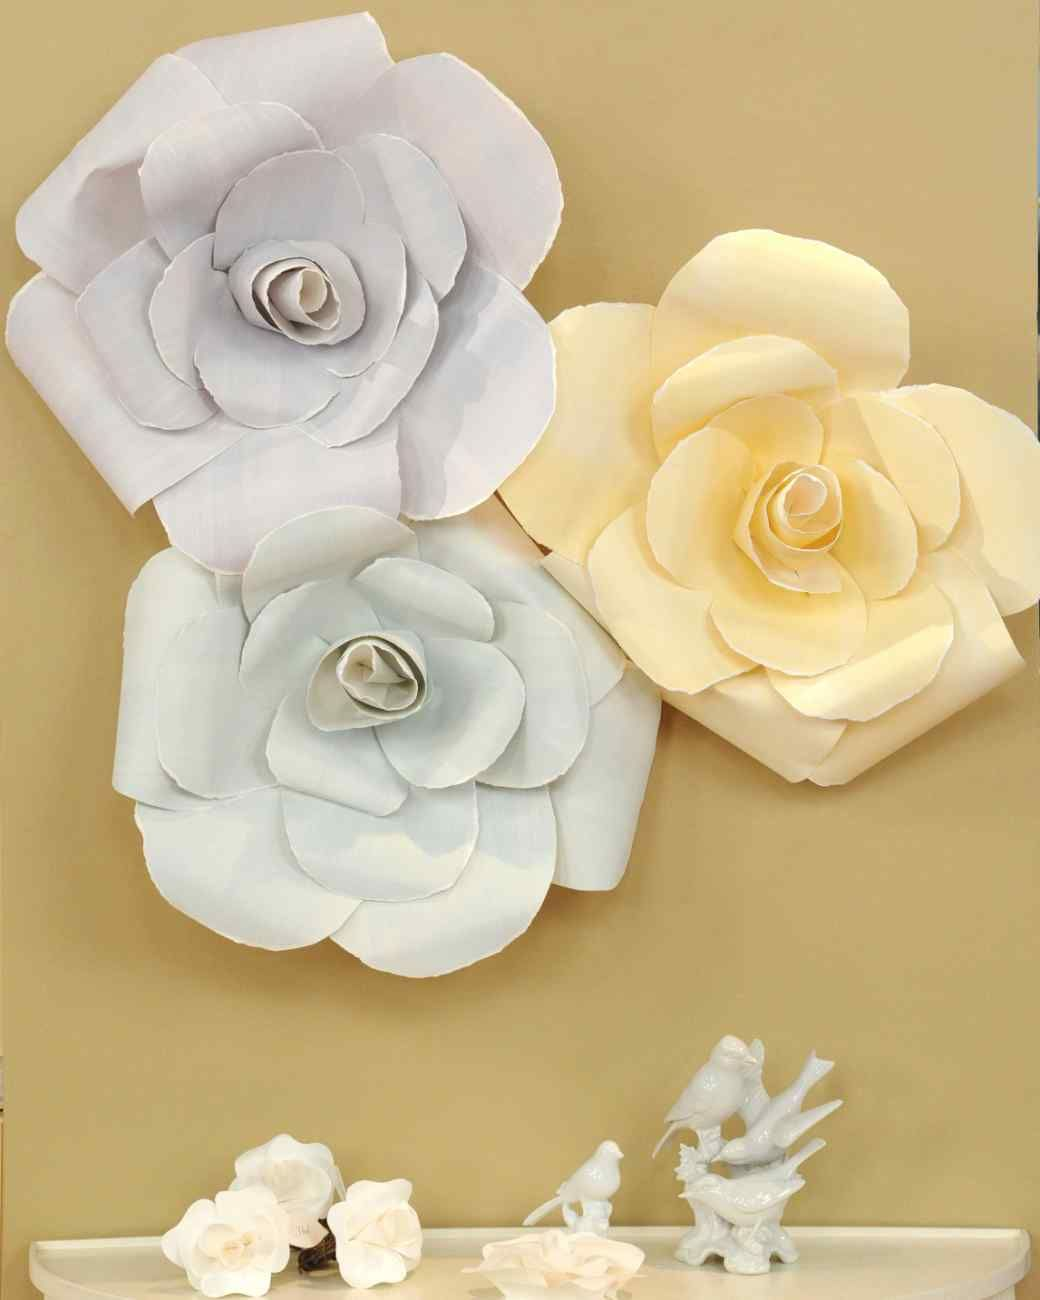 Rose inspired recipes crafts and decor paper roses paper rose inspired recipes crafts and decor large paper flowersfabric dhlflorist Choice Image